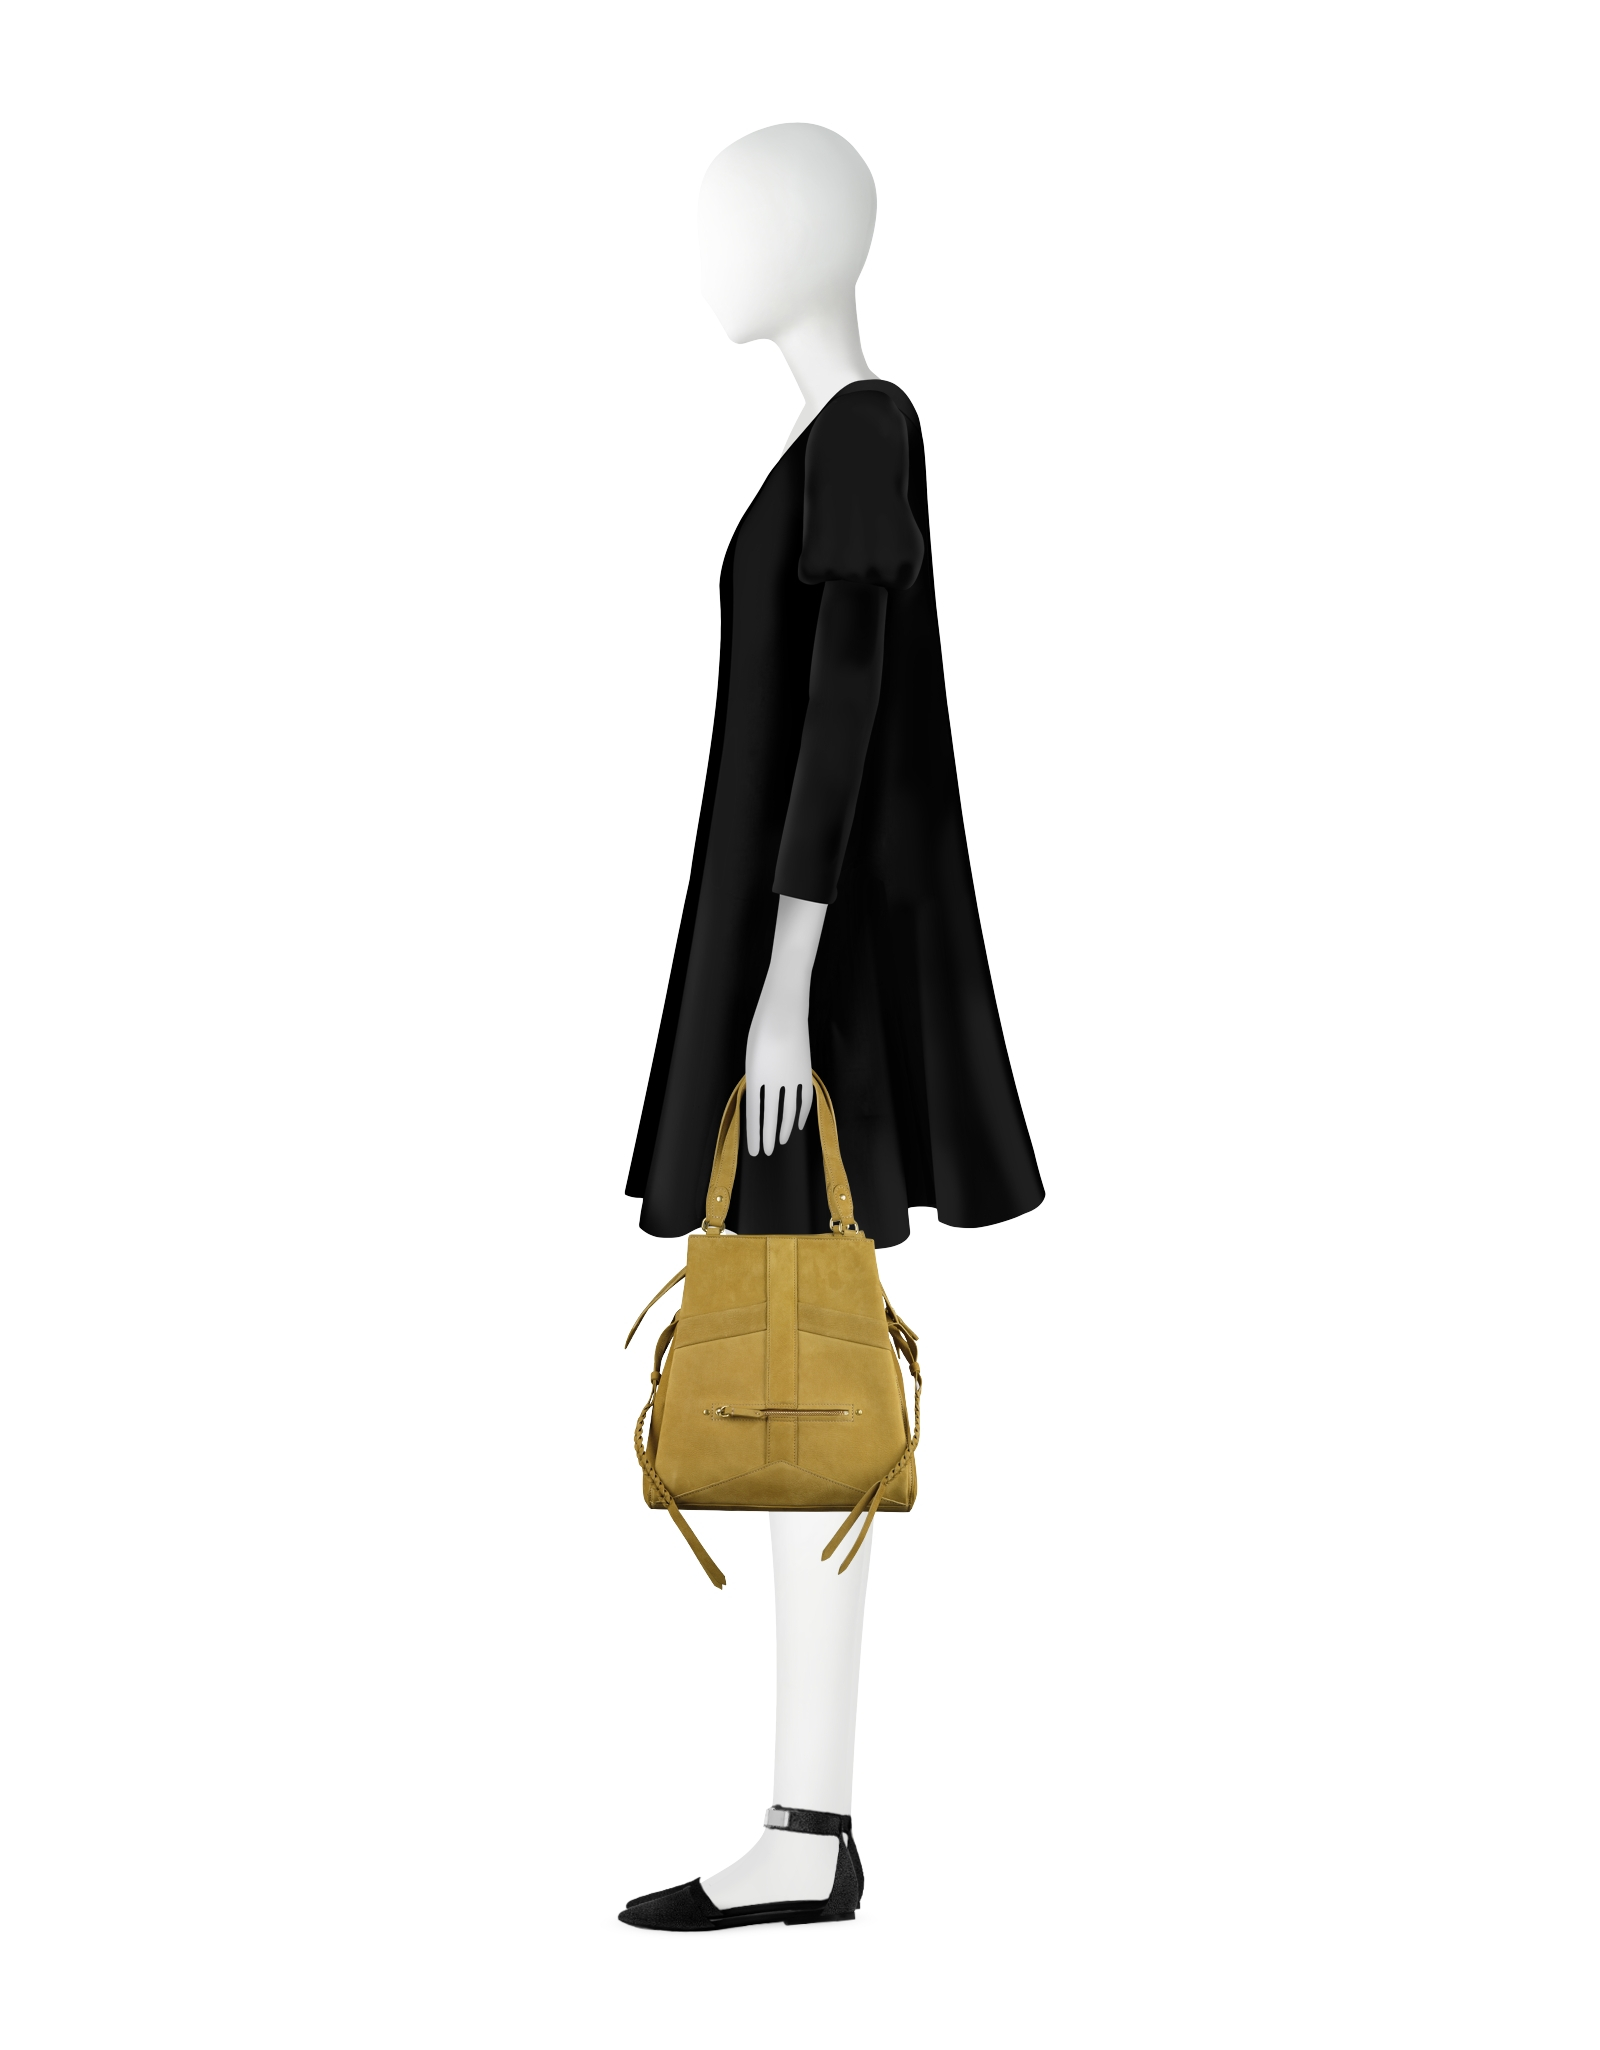 Favori Jérôme dreyfuss Anatole Mustard Leather Shoulder Bag in Yellow   Lyst FH67